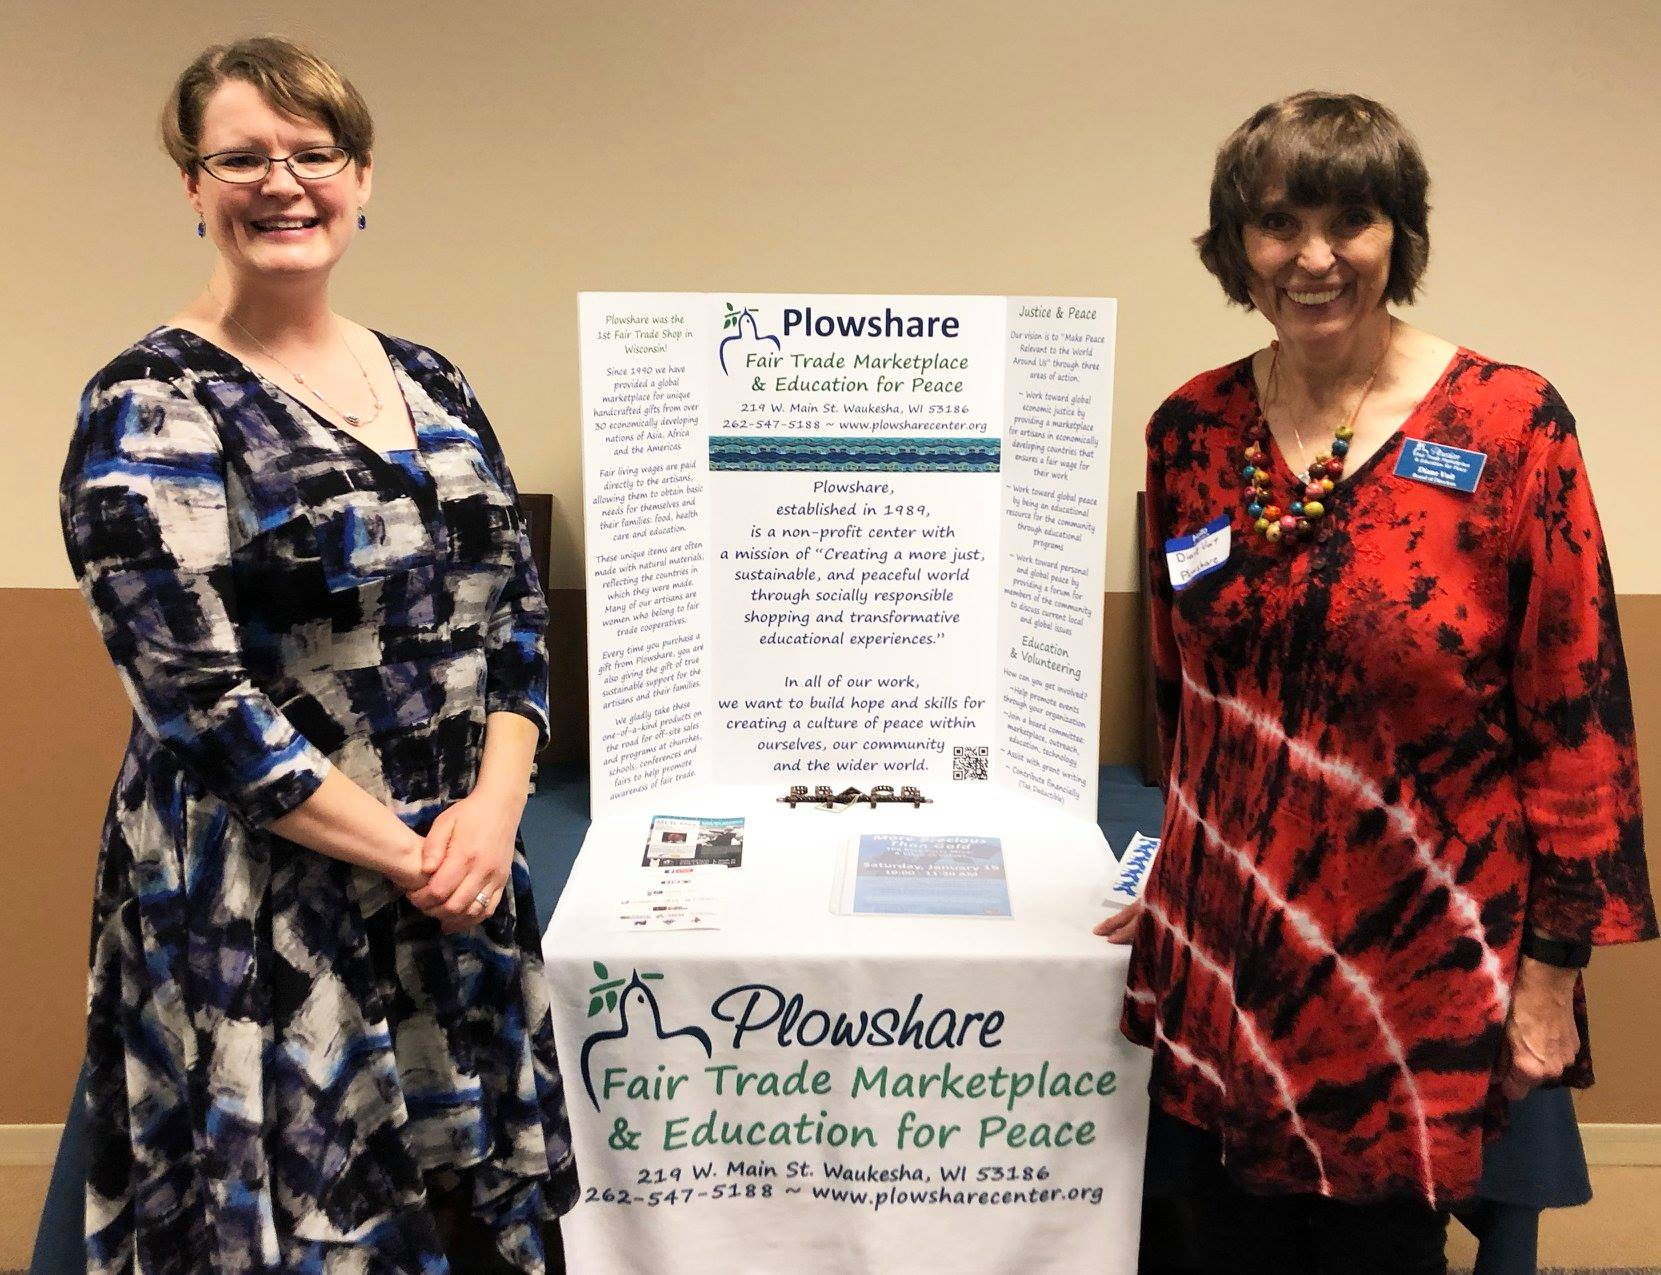 We would like to Thank Tempo Waukesha for selecting Plowshare for its Community Impact Quarterly Charity!  And Thank You  Diane  (a member of Plowshare's Speakers Bureau & Board of Directors) for representing our organization and sharing our mission!